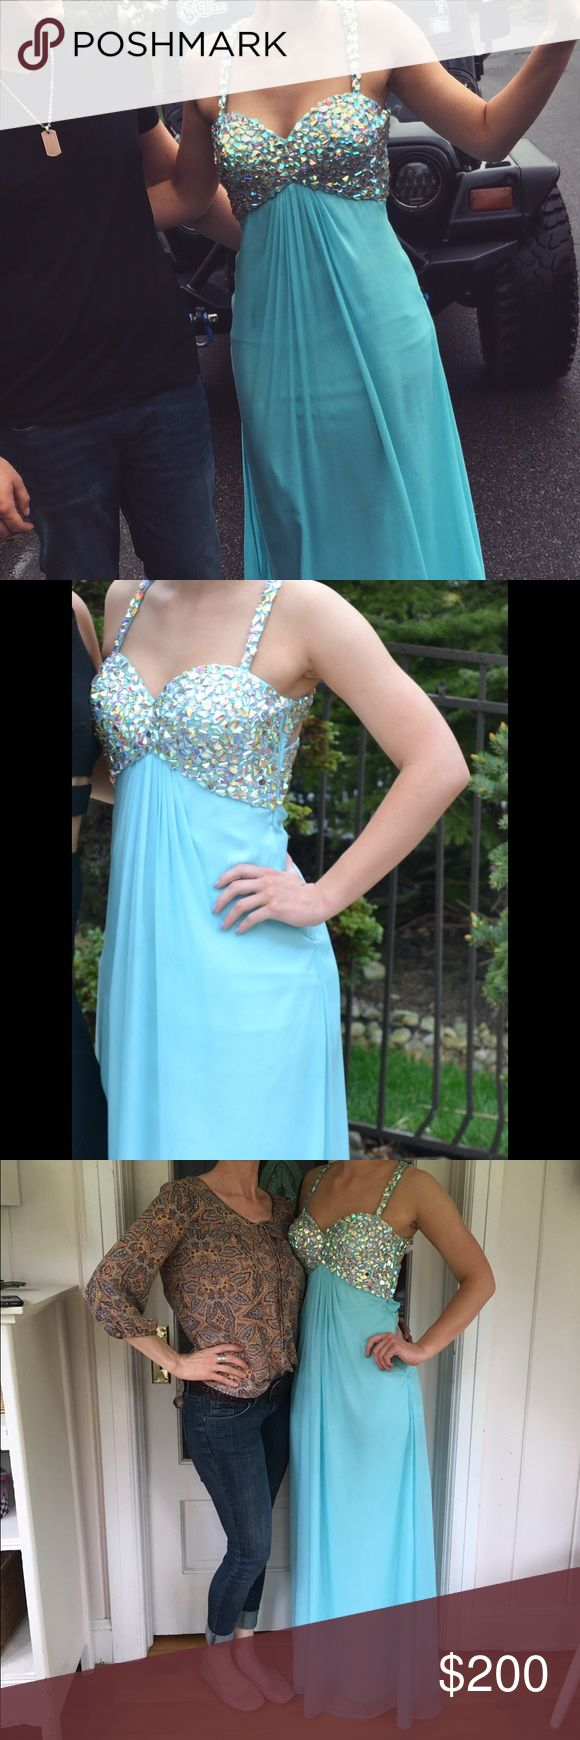 La Femme 18841 Prom Dress Beautiful tiffany blue prom dress with beading and an elegant back. Perfect for prom or any formal event, only worn once & willing to negotiate price :) La Femme Dresses Prom